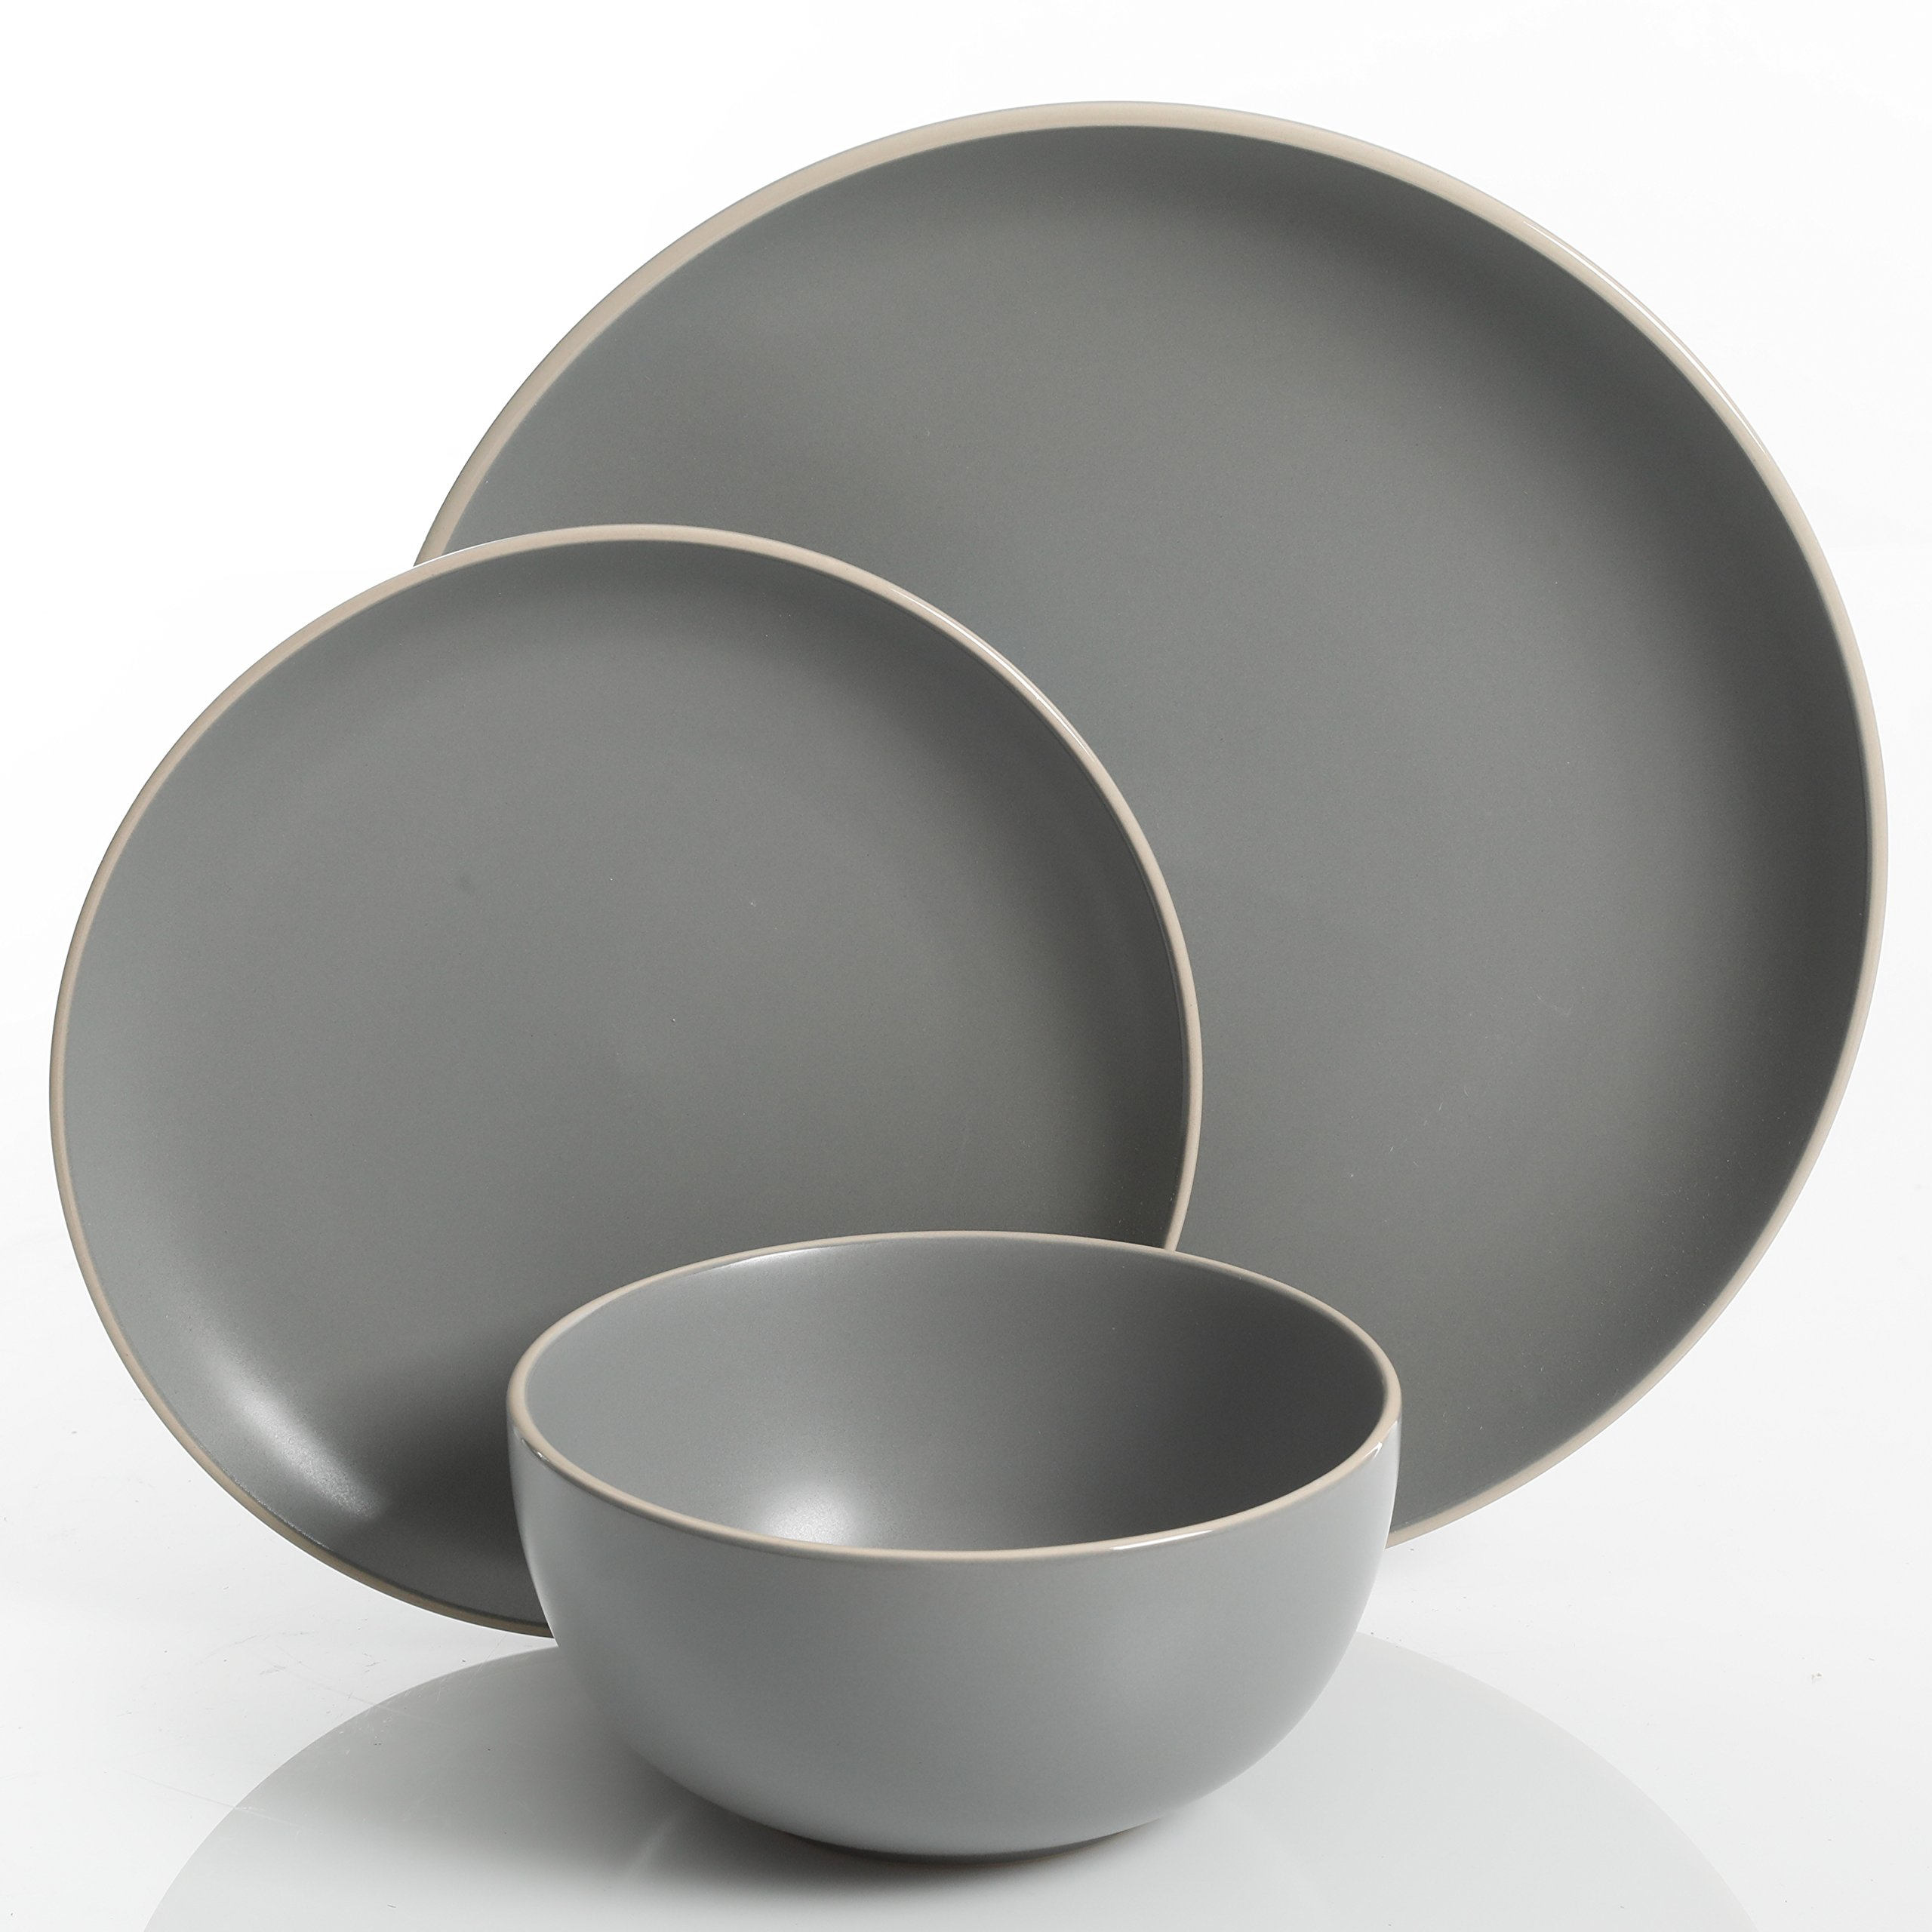 Gibson Home 114388.12RM Rockaway 12-Piece Dinnerware Set Service for 4, Grey Matte by Gibson Home (Image #2)